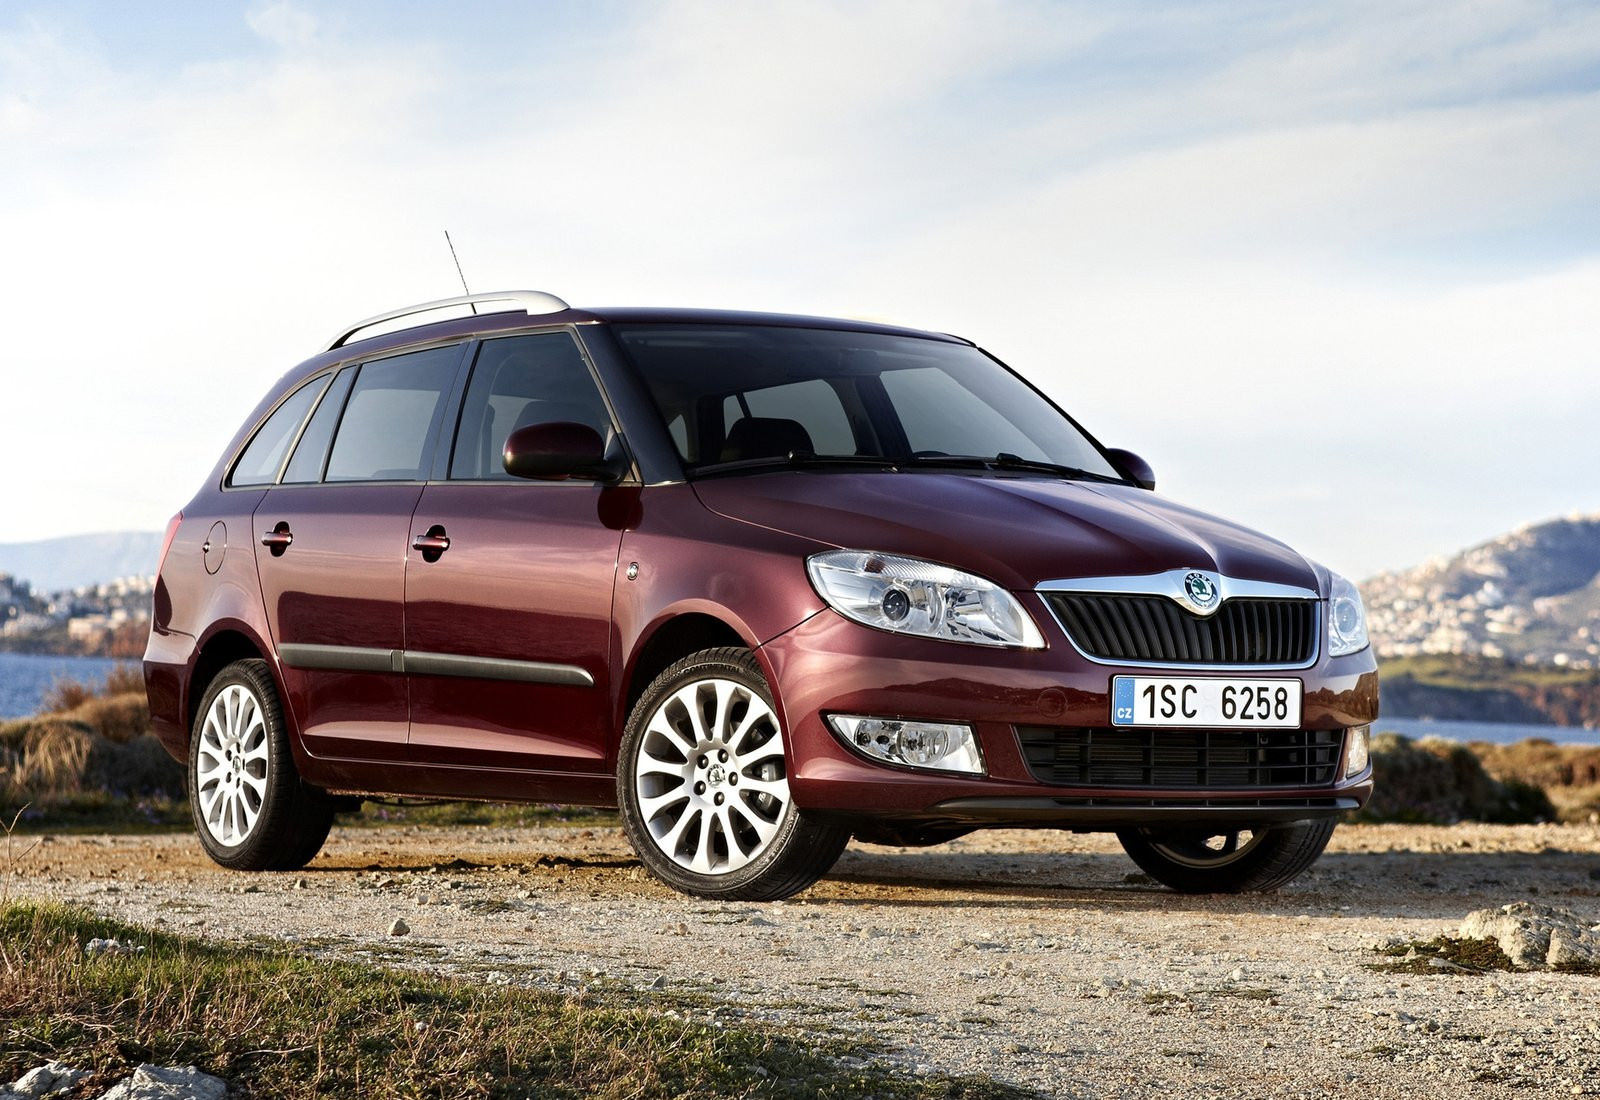 image of a maroon skoda fabia estate car exterior